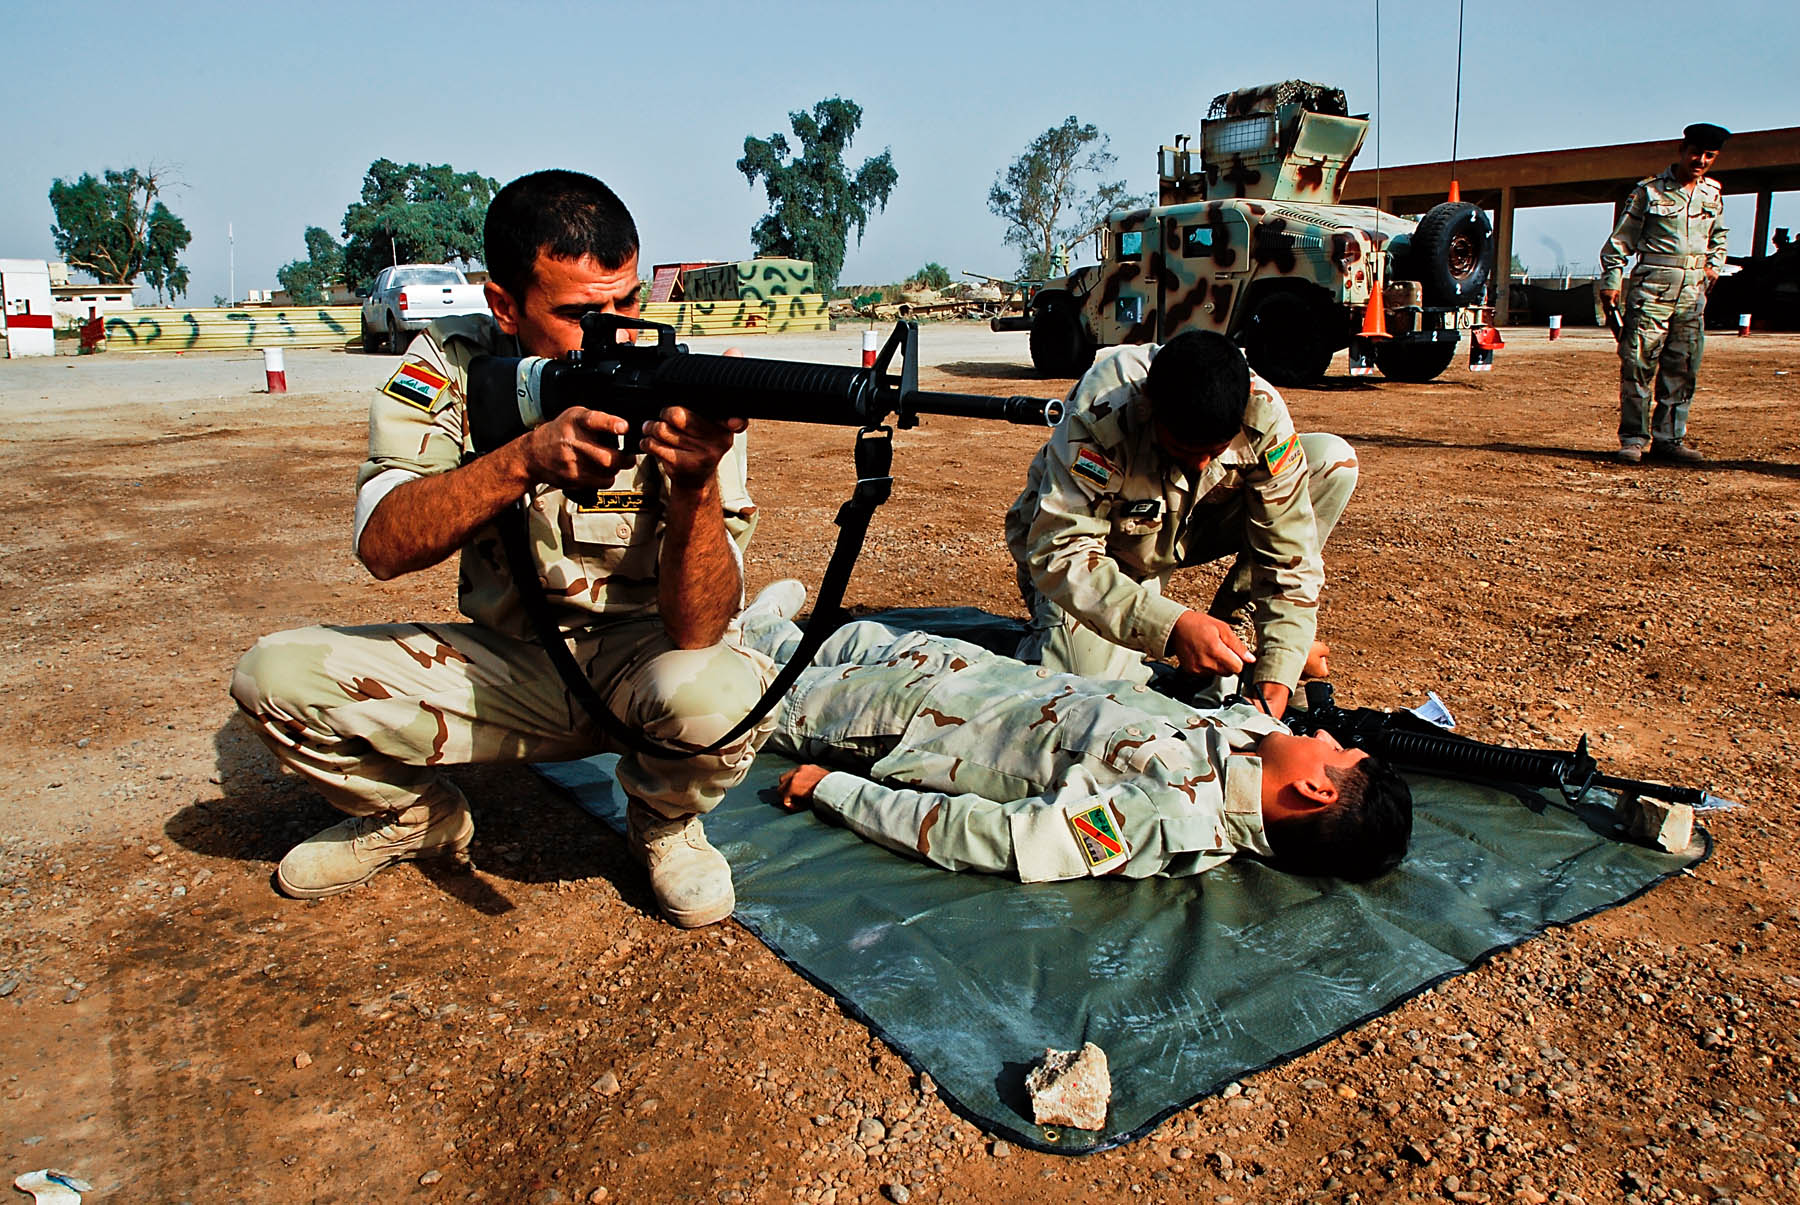 security during a training exercise as a wounded comrade receives